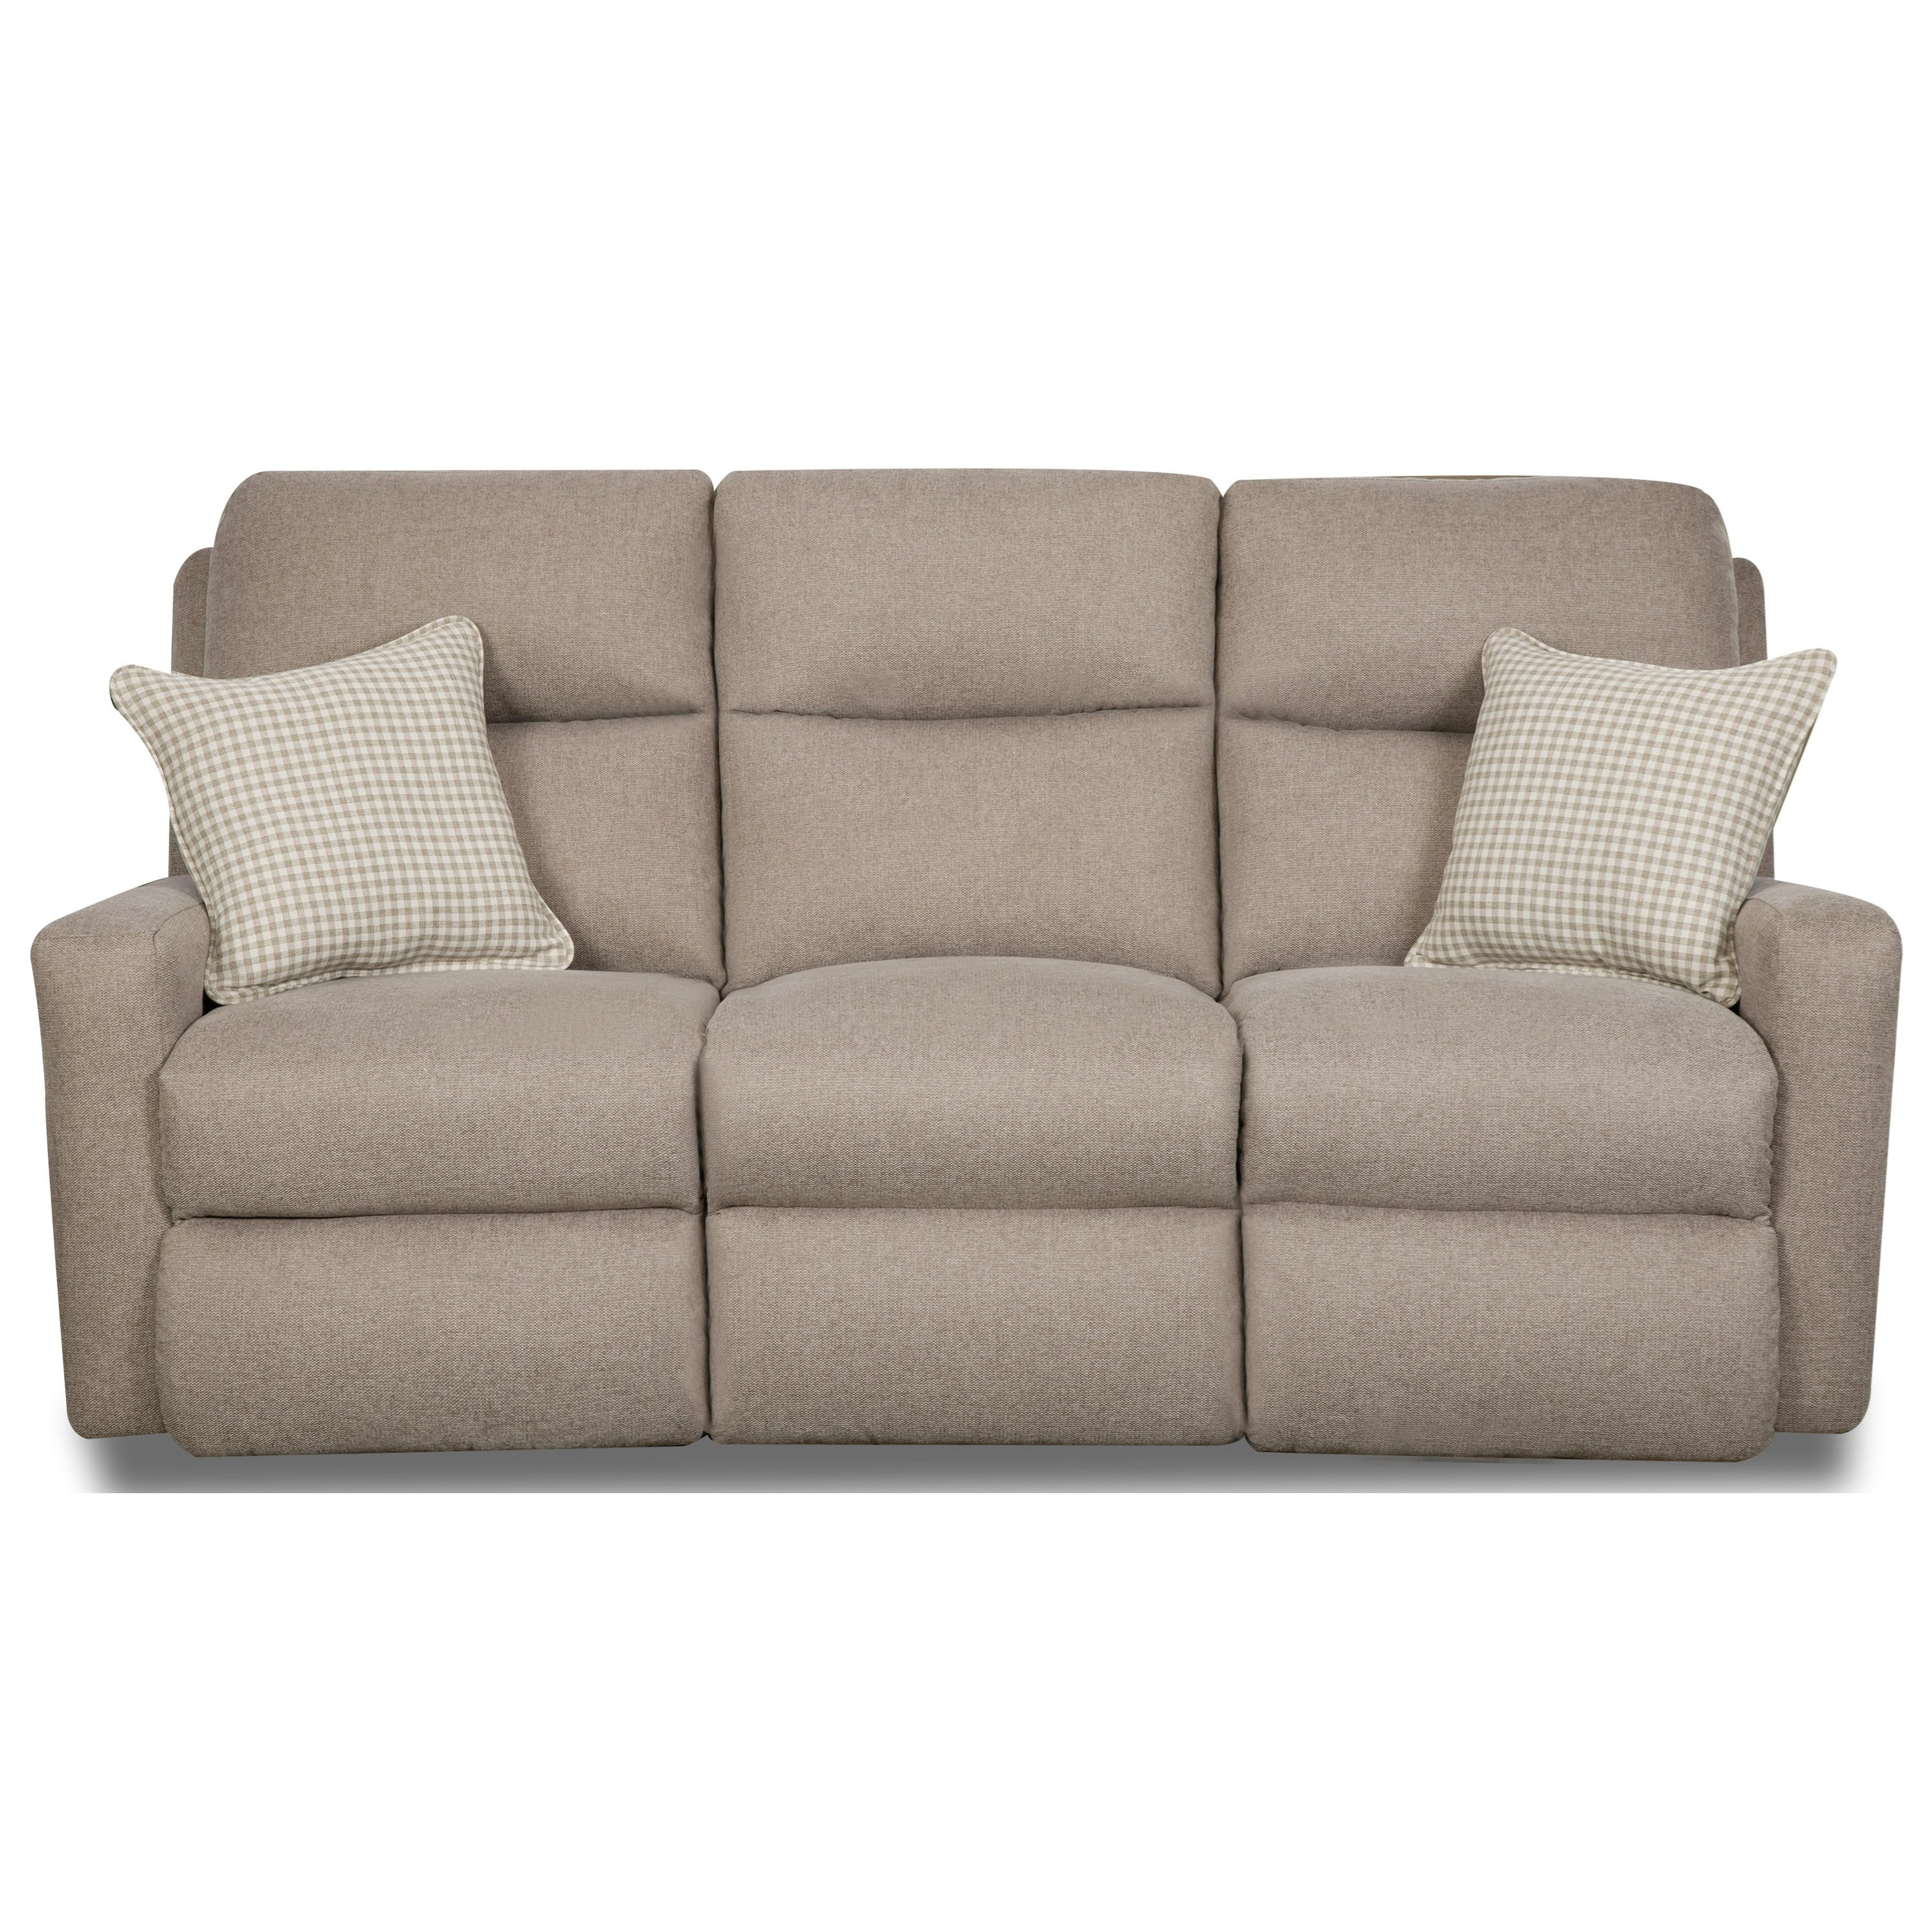 Metro Double Reclining Sofa by Southern Motion at Pilgrim Furniture City